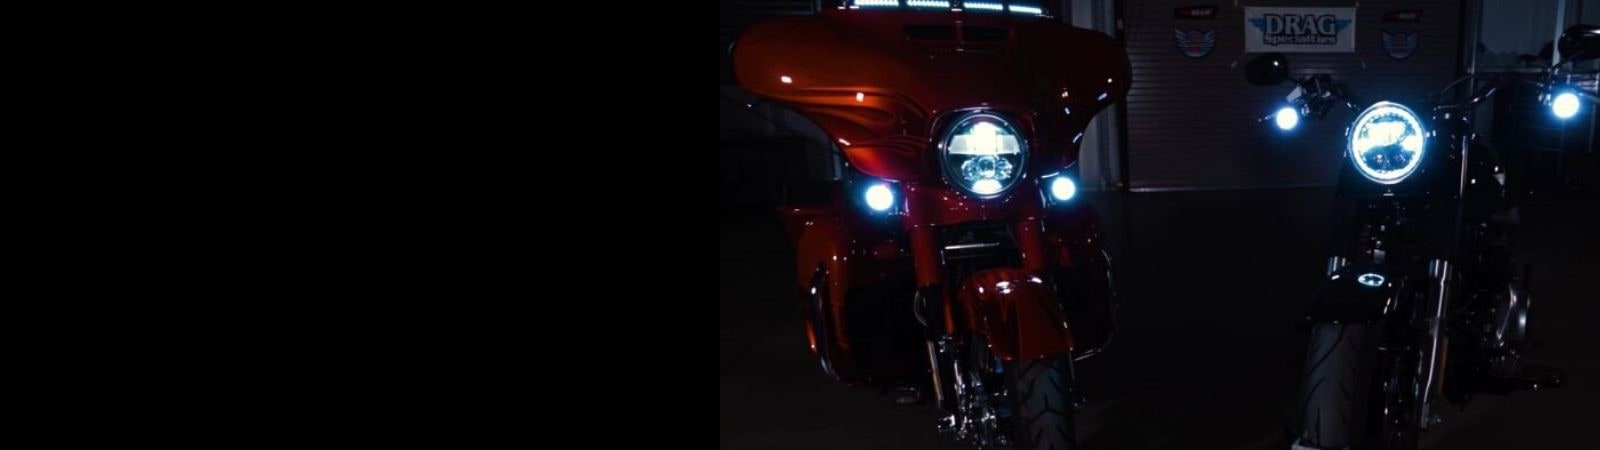 Motorcycle LED Headlamps & Passing Lamps